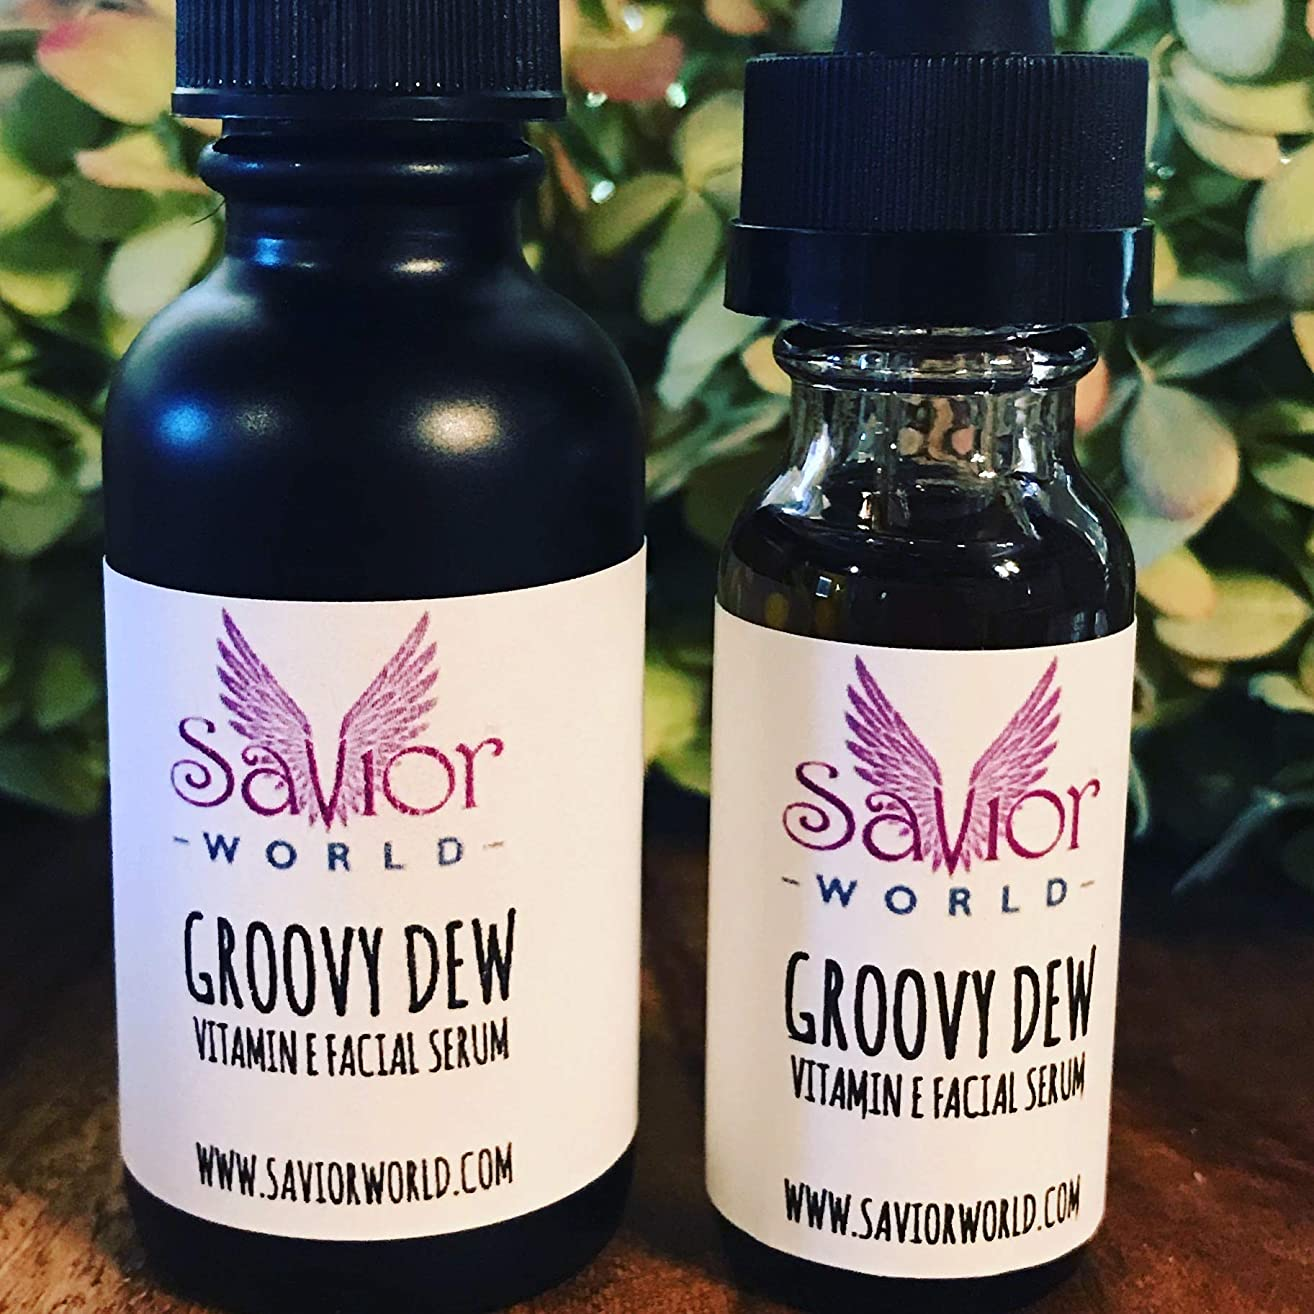 Groovy Dew Vitamin E Facial Serum